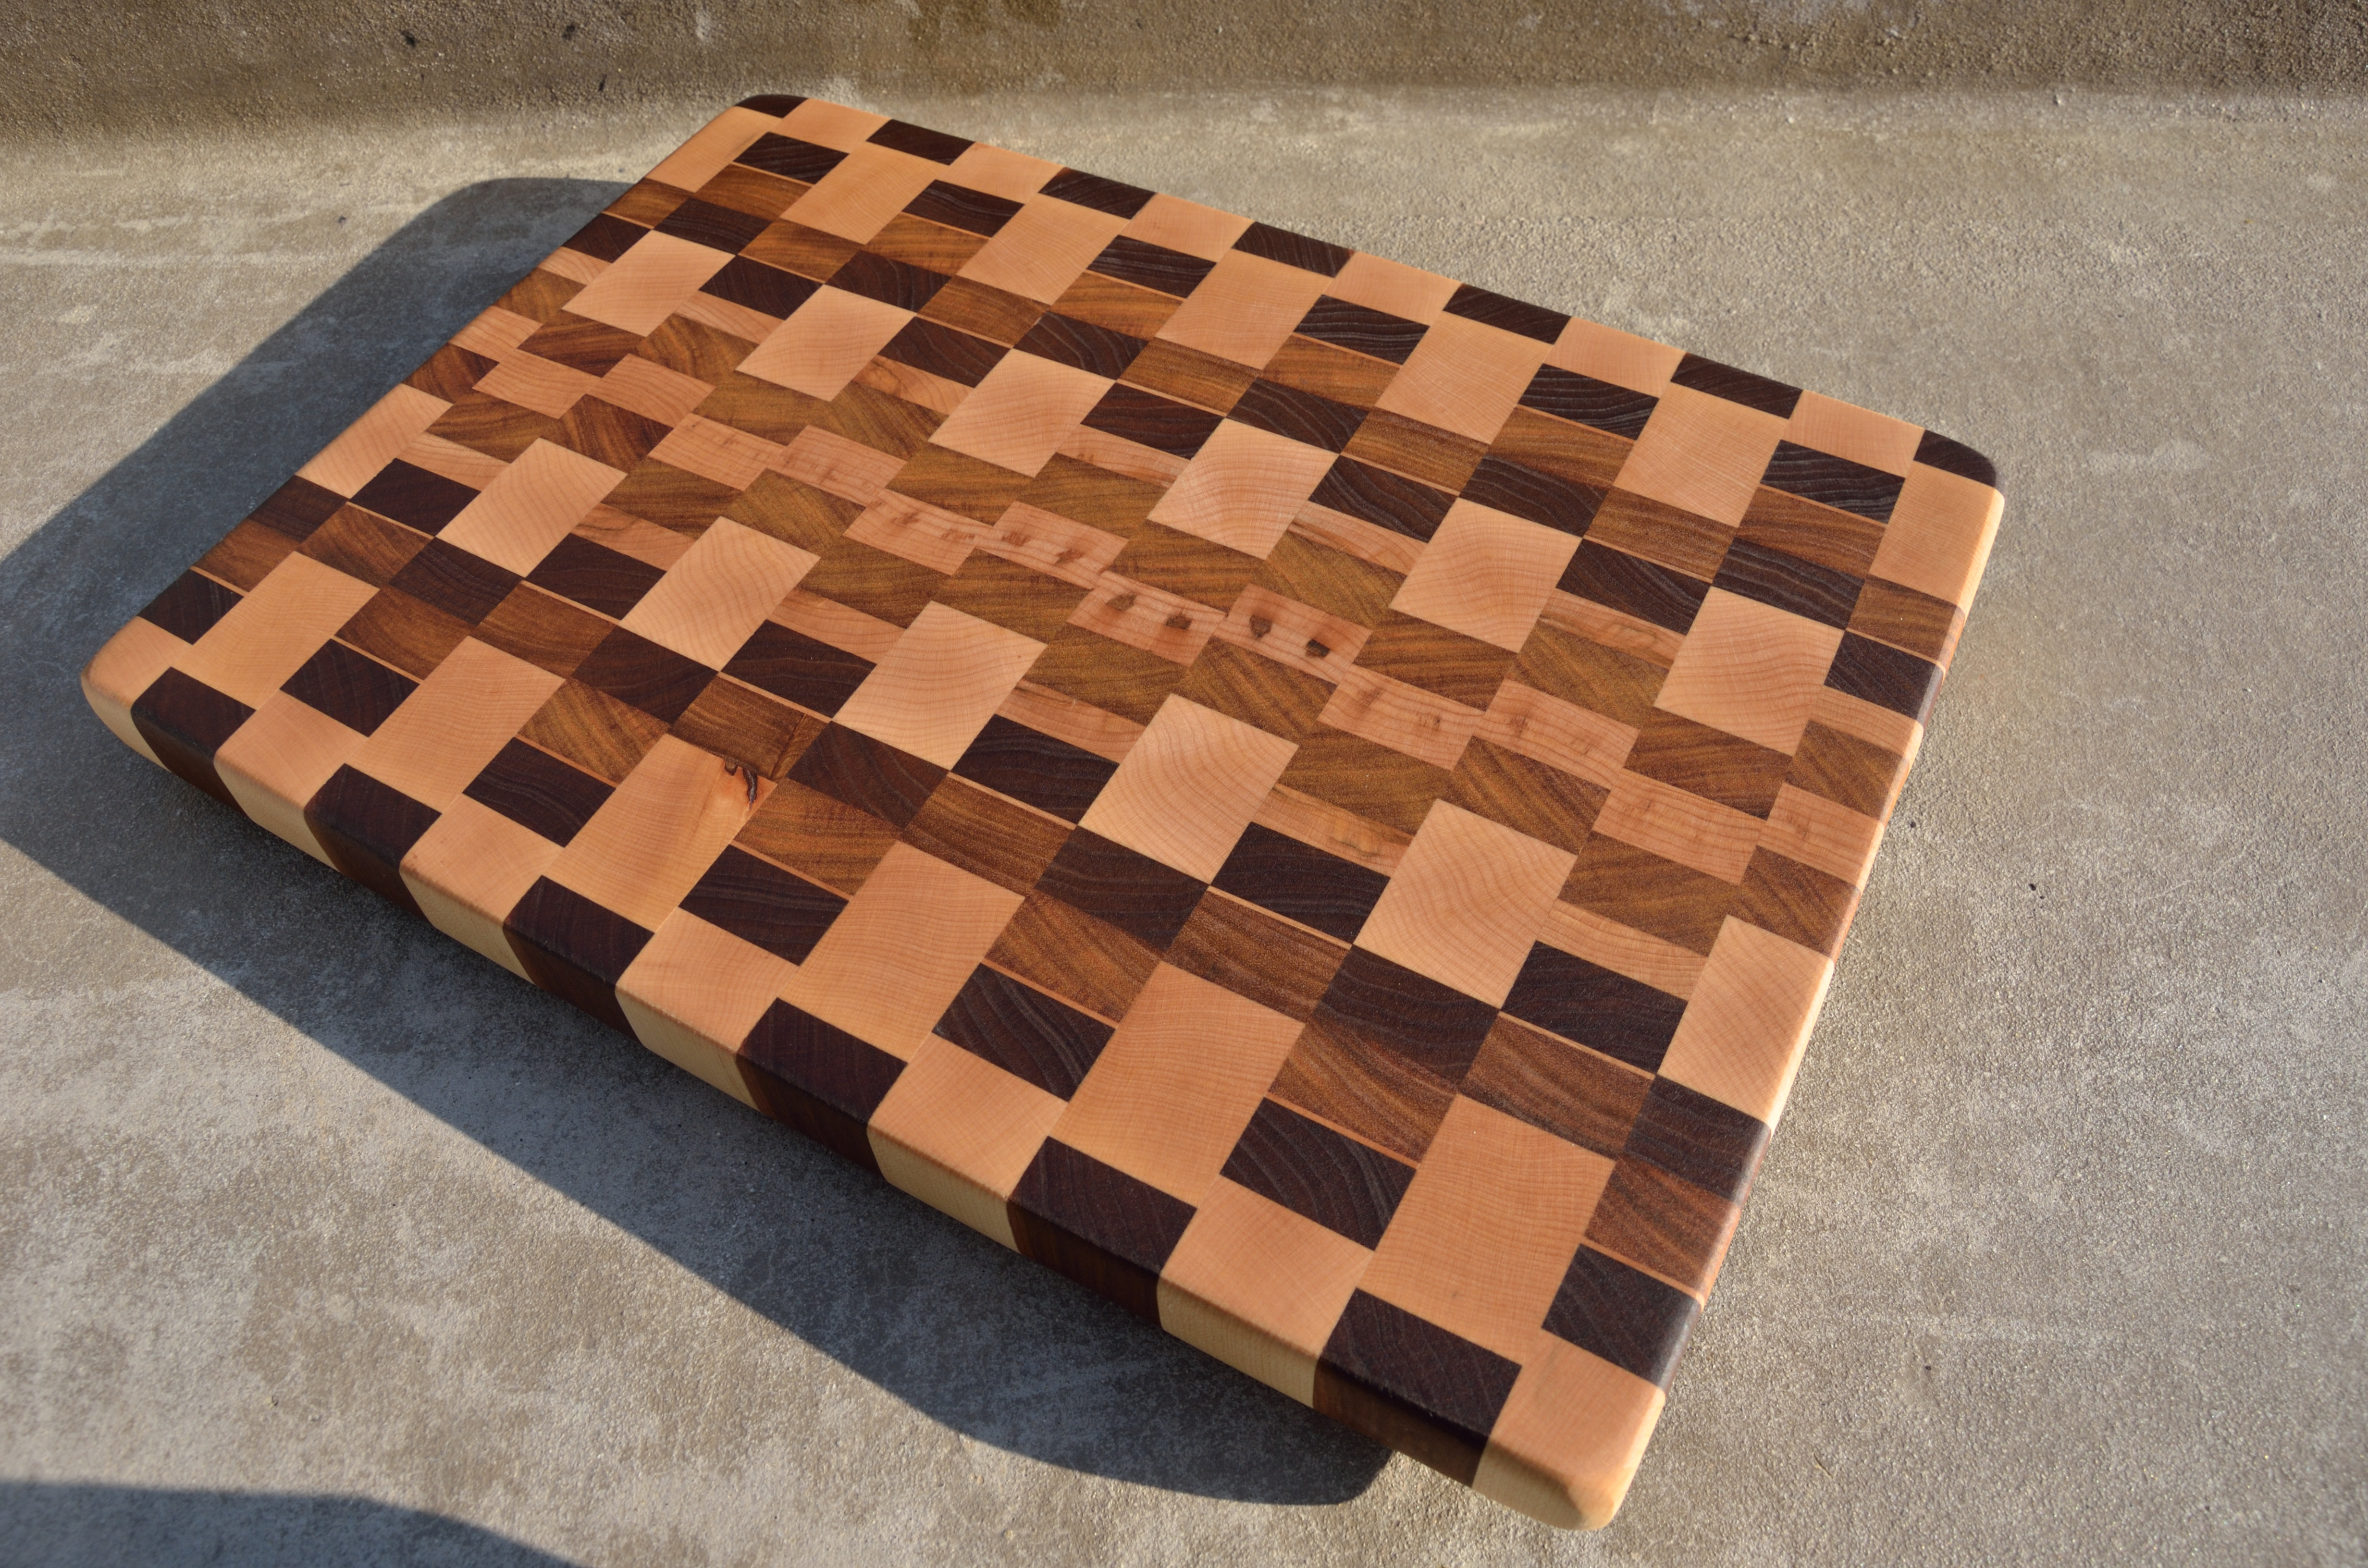 Diy wood cutting boards free designs wooden pdf wooden for Cutting board designs